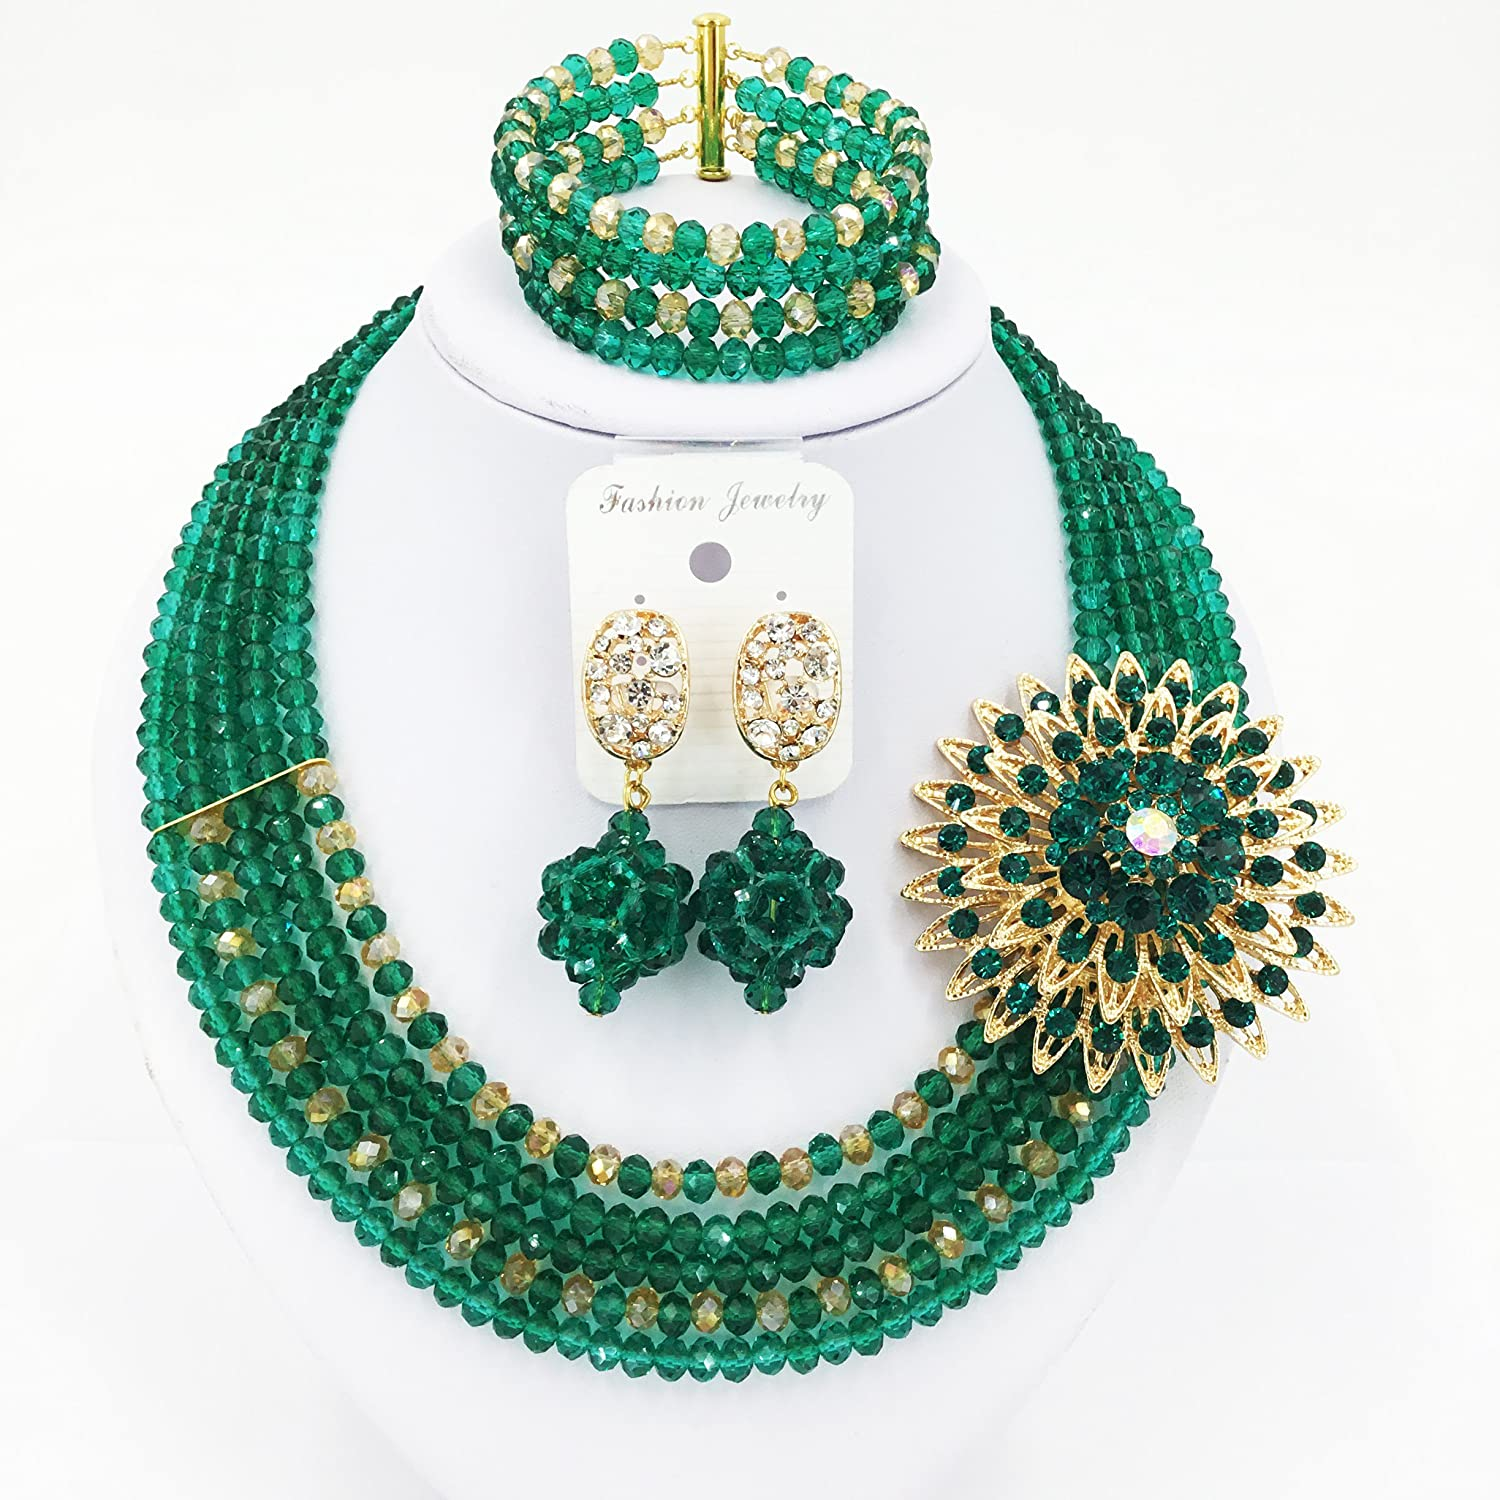 0af6a7a3e6dca aczuv 5 Rows Nigerian Beaded Jewelry Set Women African Wedding Beads  Crystal Necklace and Earrings